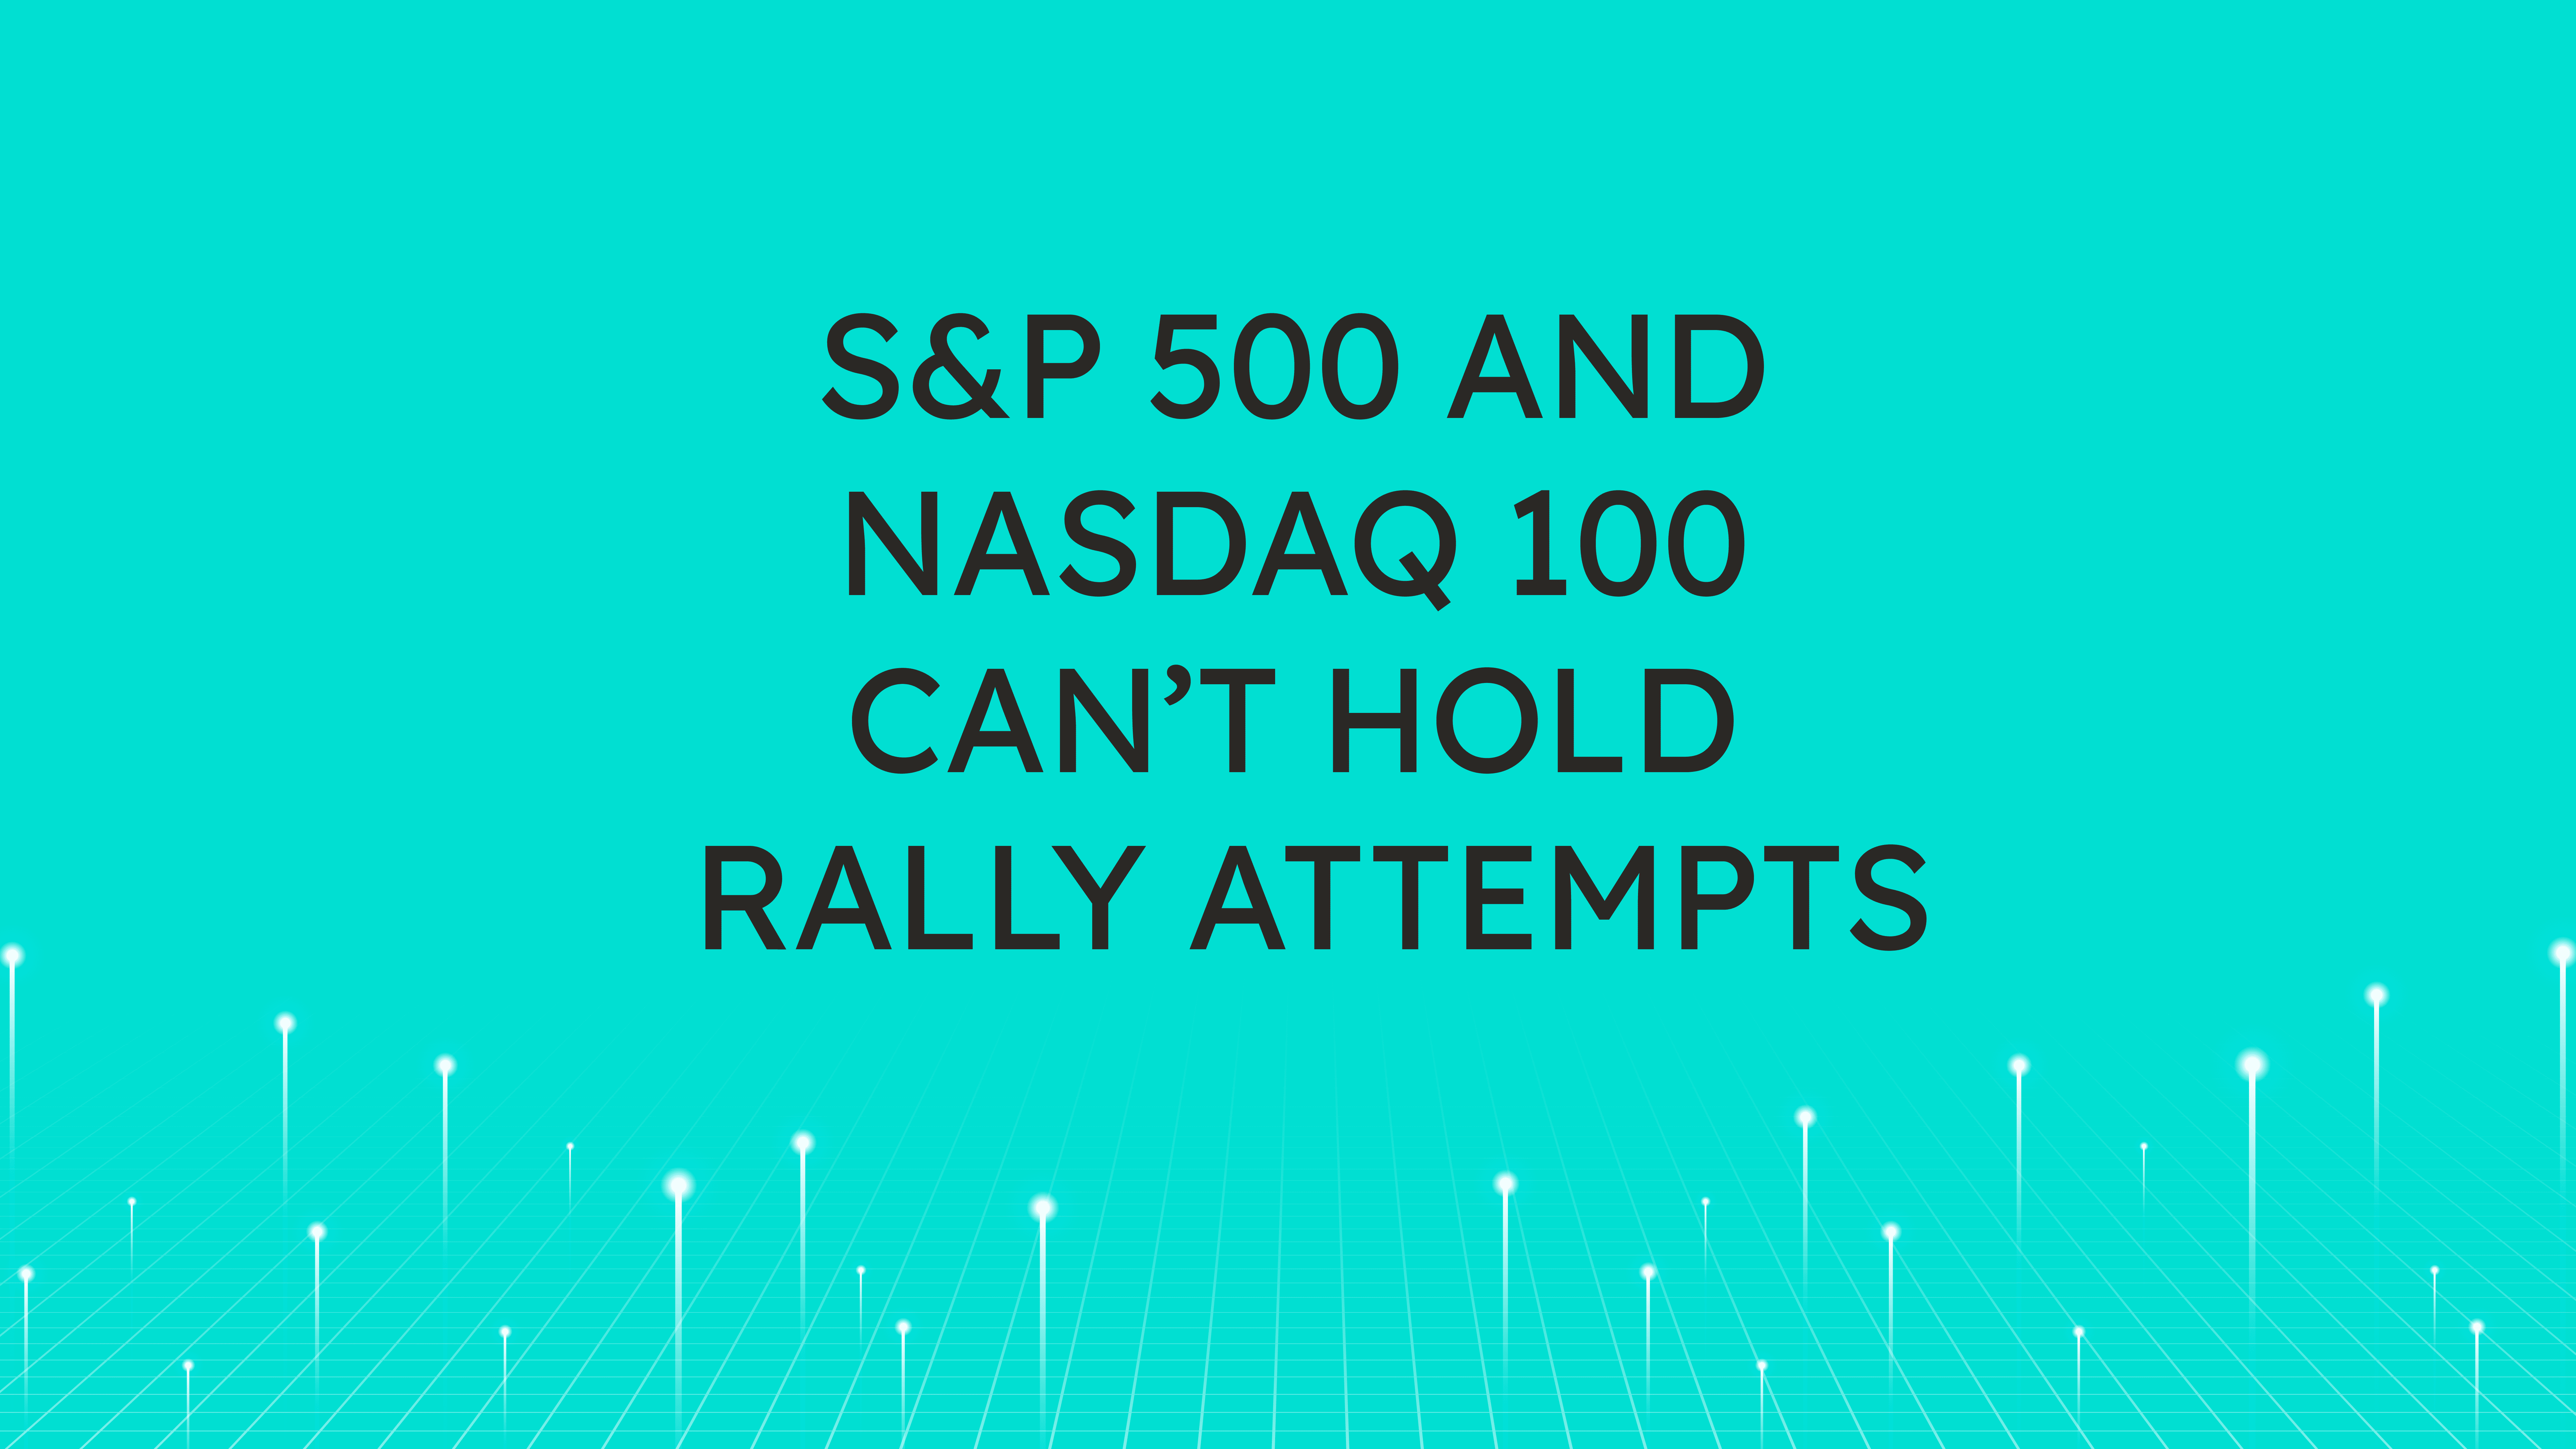 S&P 500 and NASDAQ 100  Can't Hold Rally Attempts